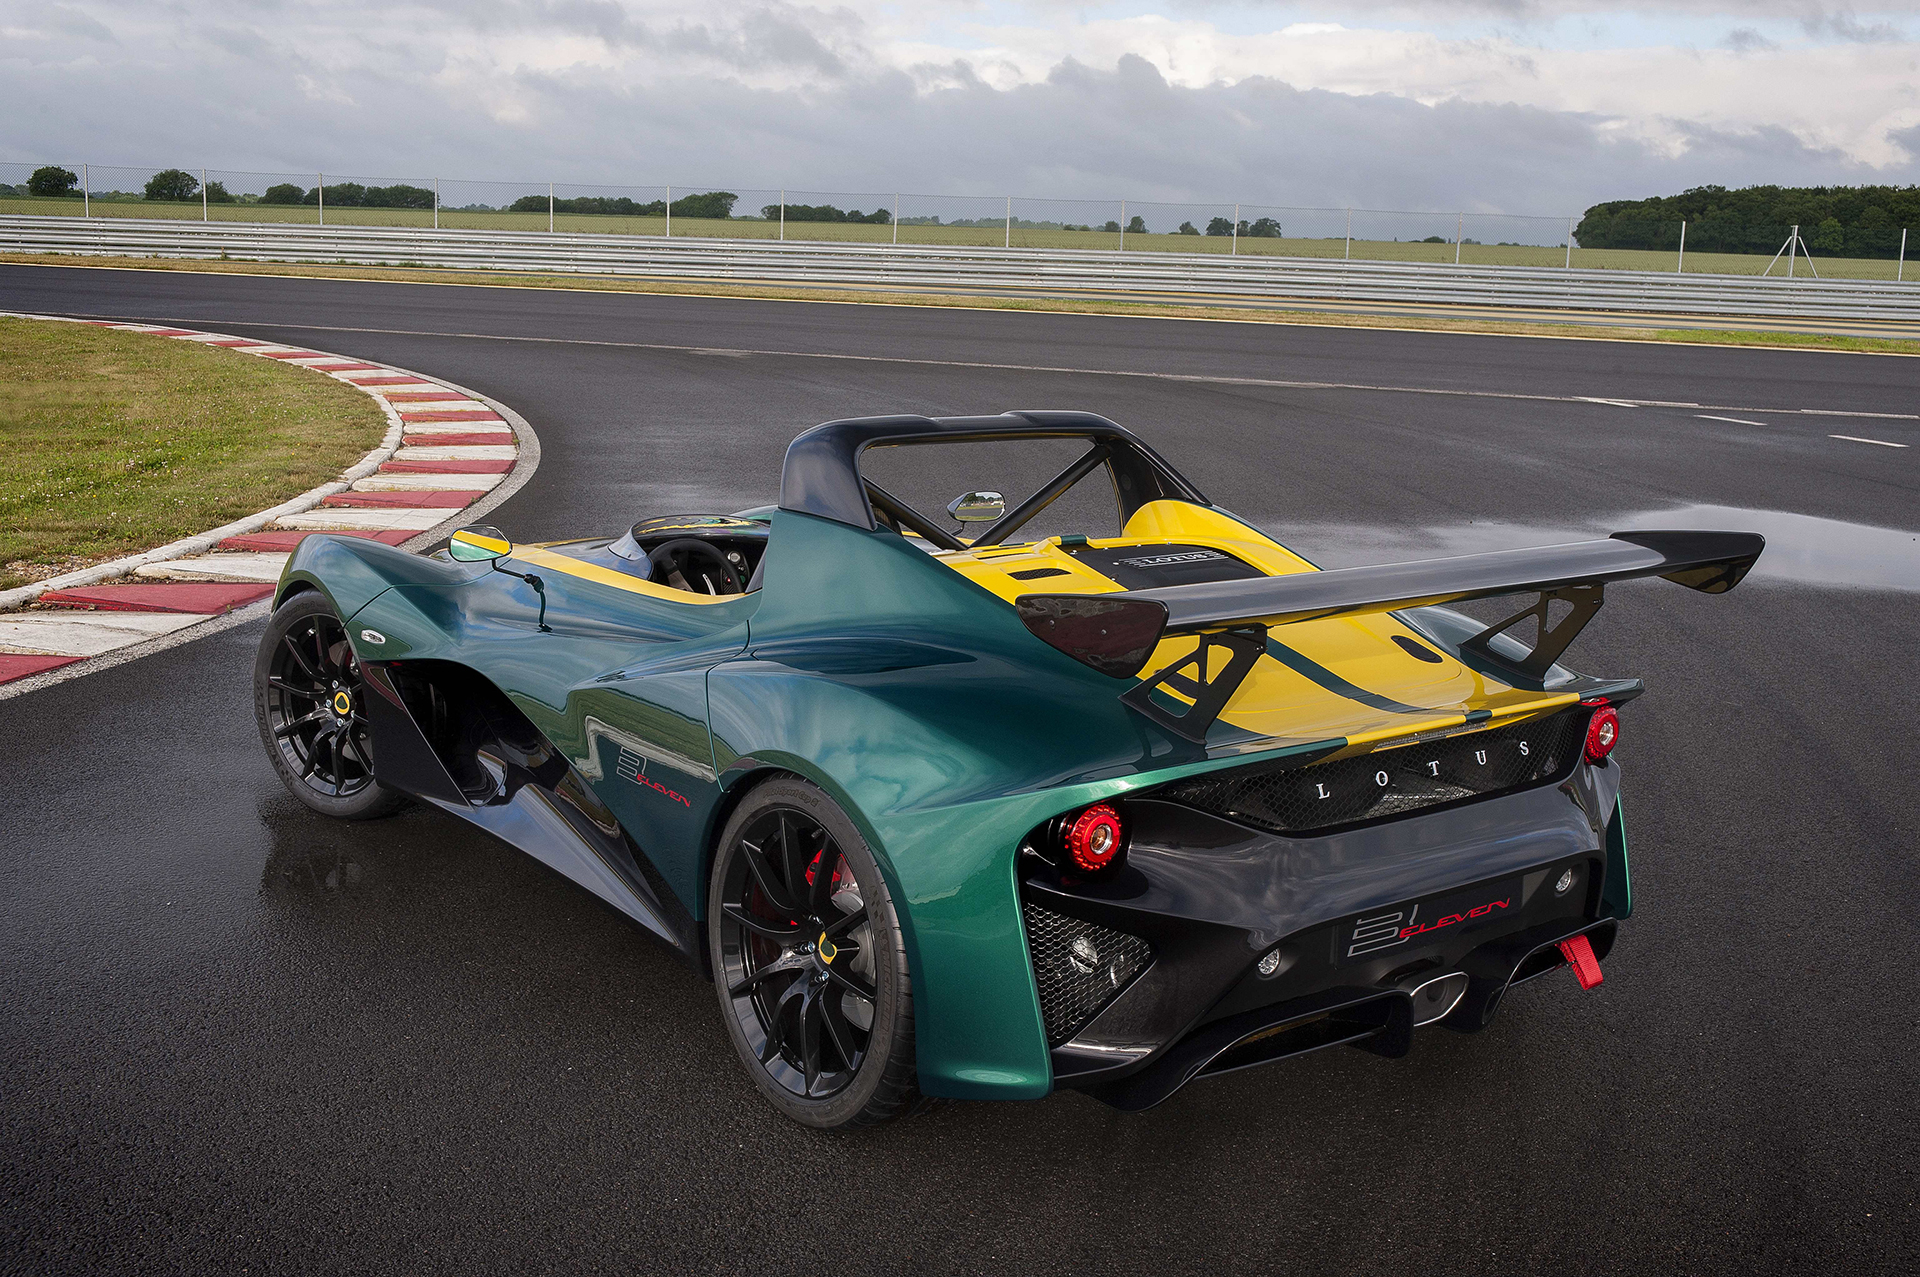 Lotus Cars 3-Eleven - profil arrière / rear side-face